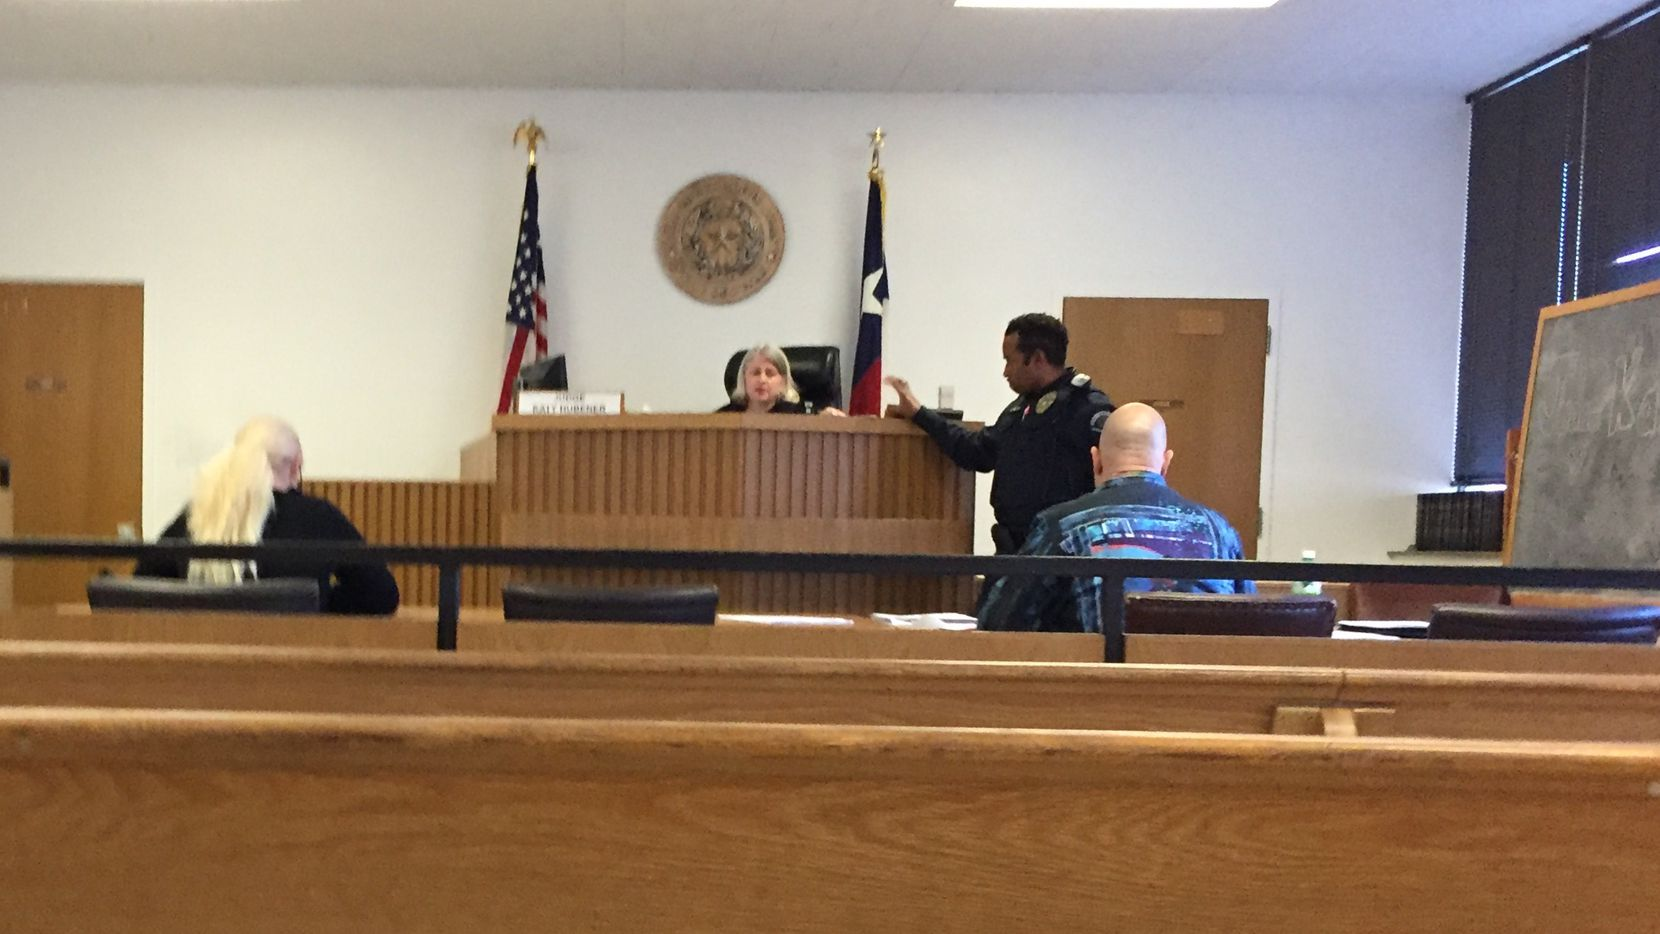 In Judge Katy Hubener's Irving small claims court, Irving waitress Christal Scott (left) sued David A. Kost Jr. (right) for $7,500 in a used-car dispute.